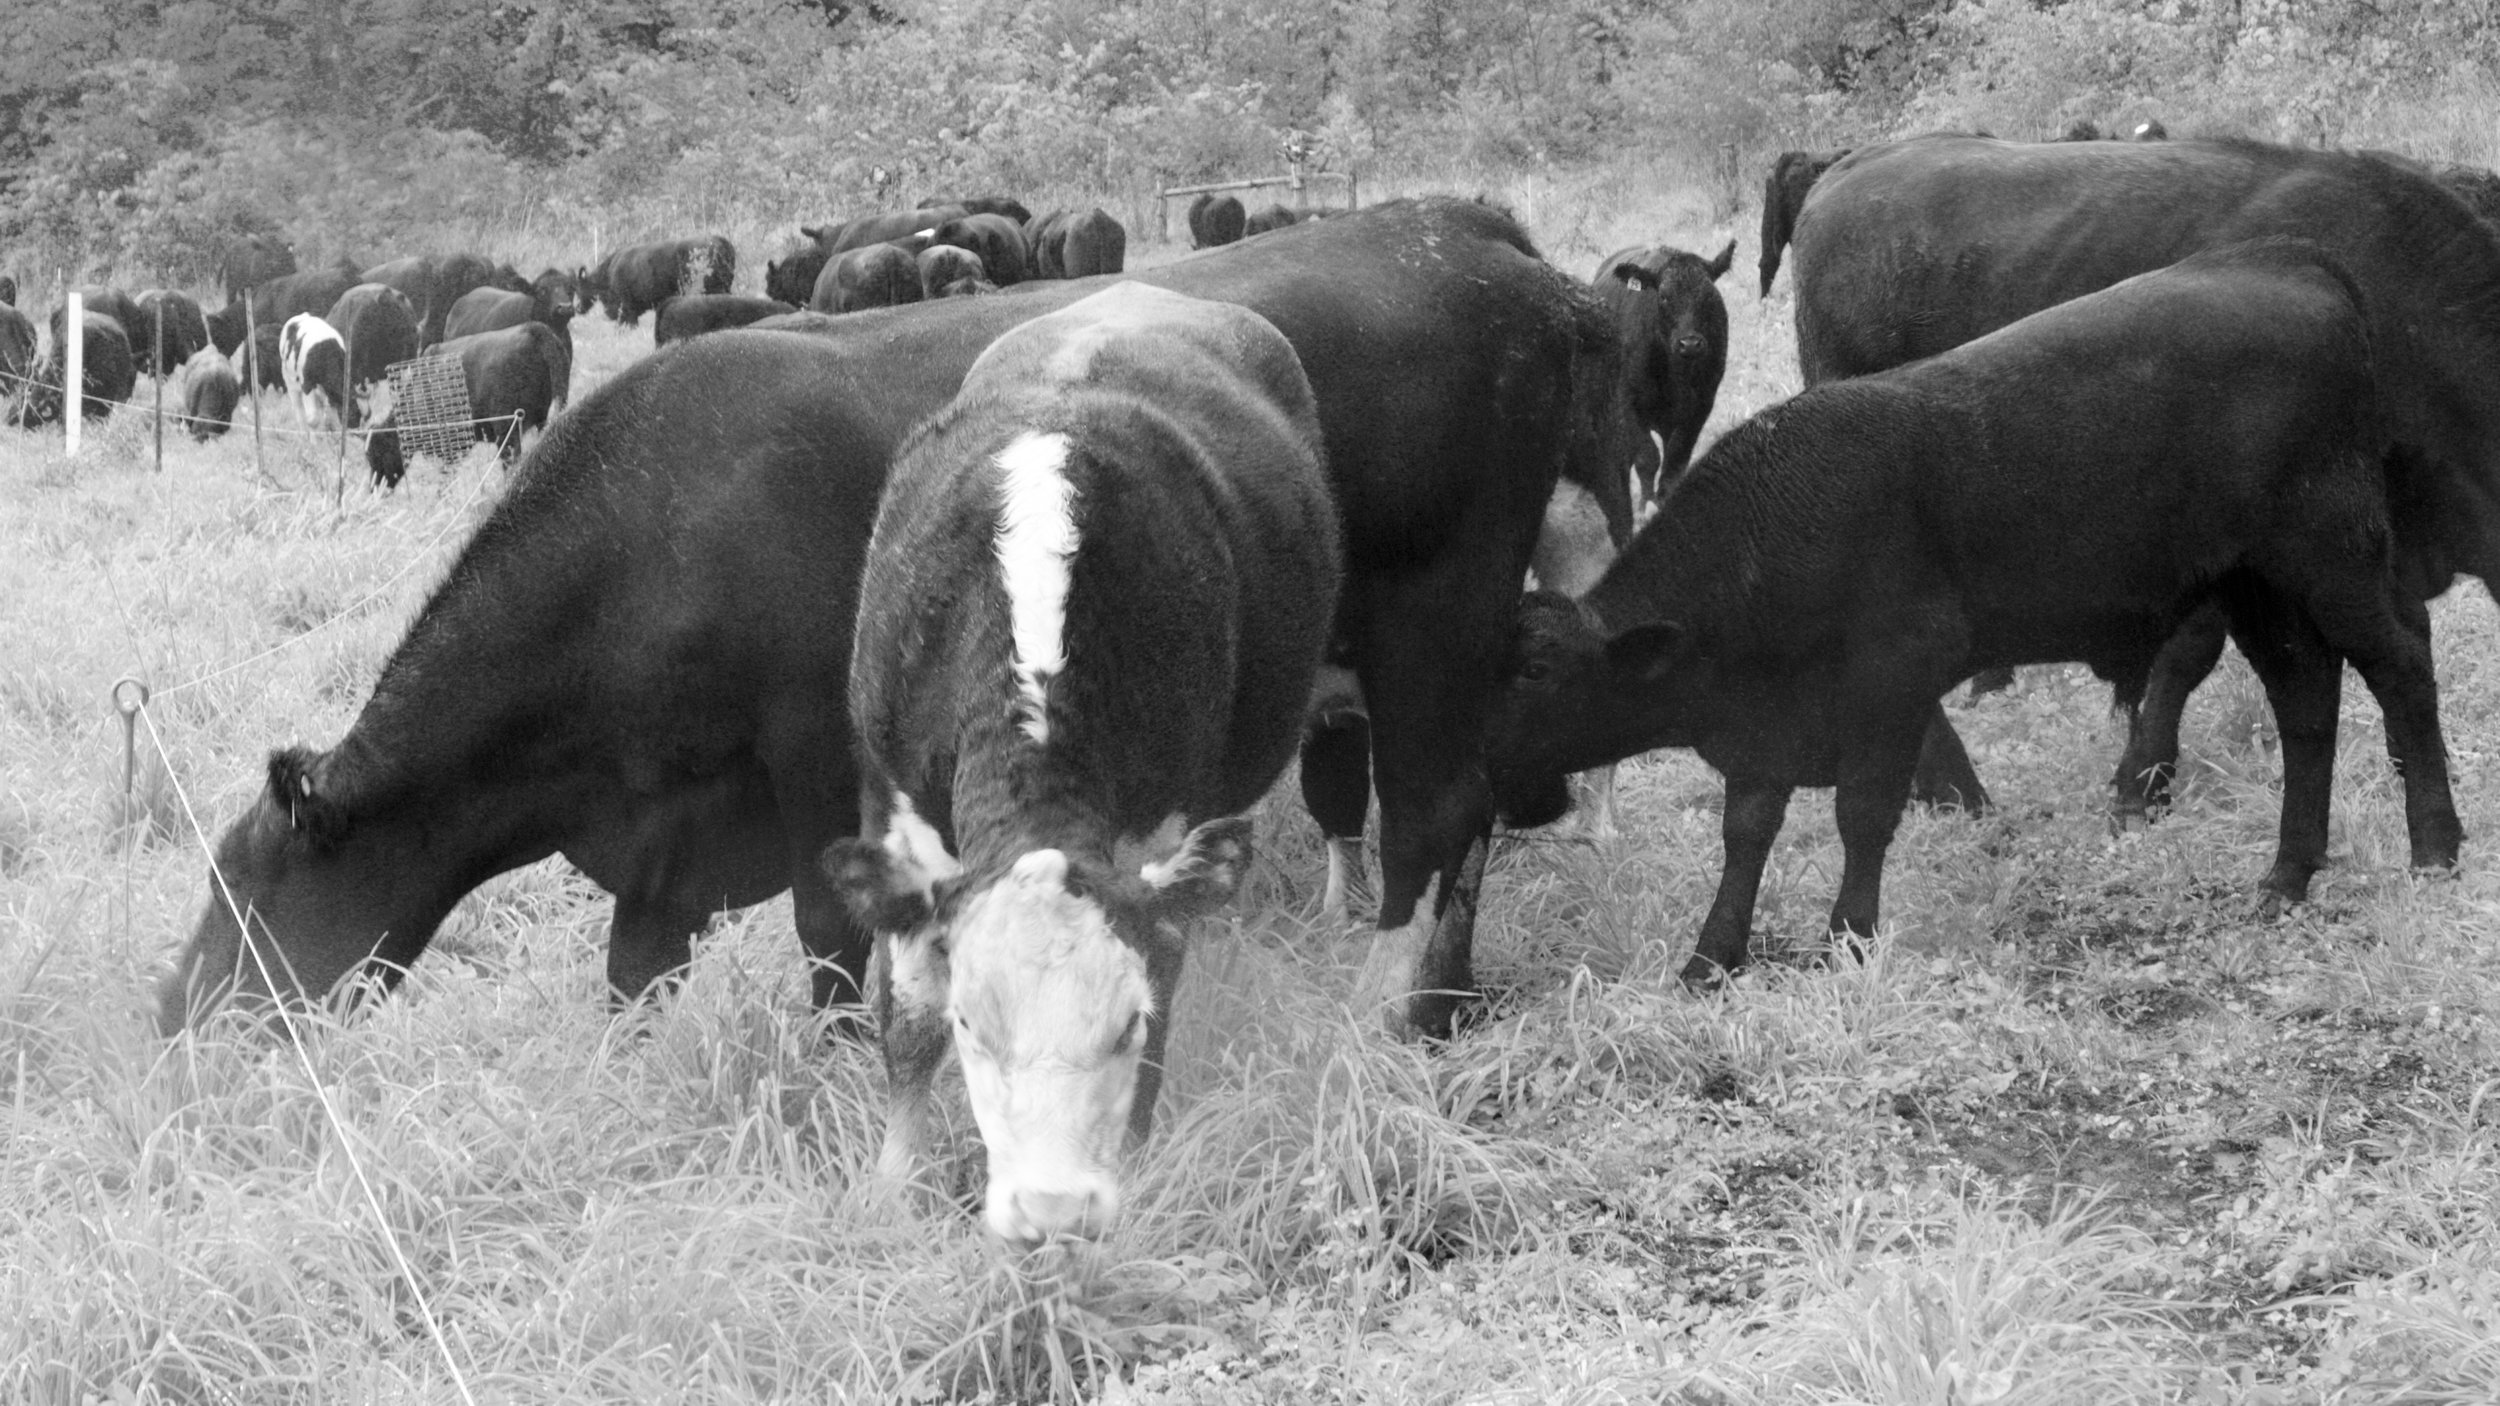 Jacob's cattle eat grass for their entire lives. They are rotated to fresh pasture daily, such that they only eat the tips of the grass. The ends of the grass have the most energy, and help the cattle grow into healthy beasts.The slaughterhouse has a hard time believing that they are grass-finished because their fat content is on point.